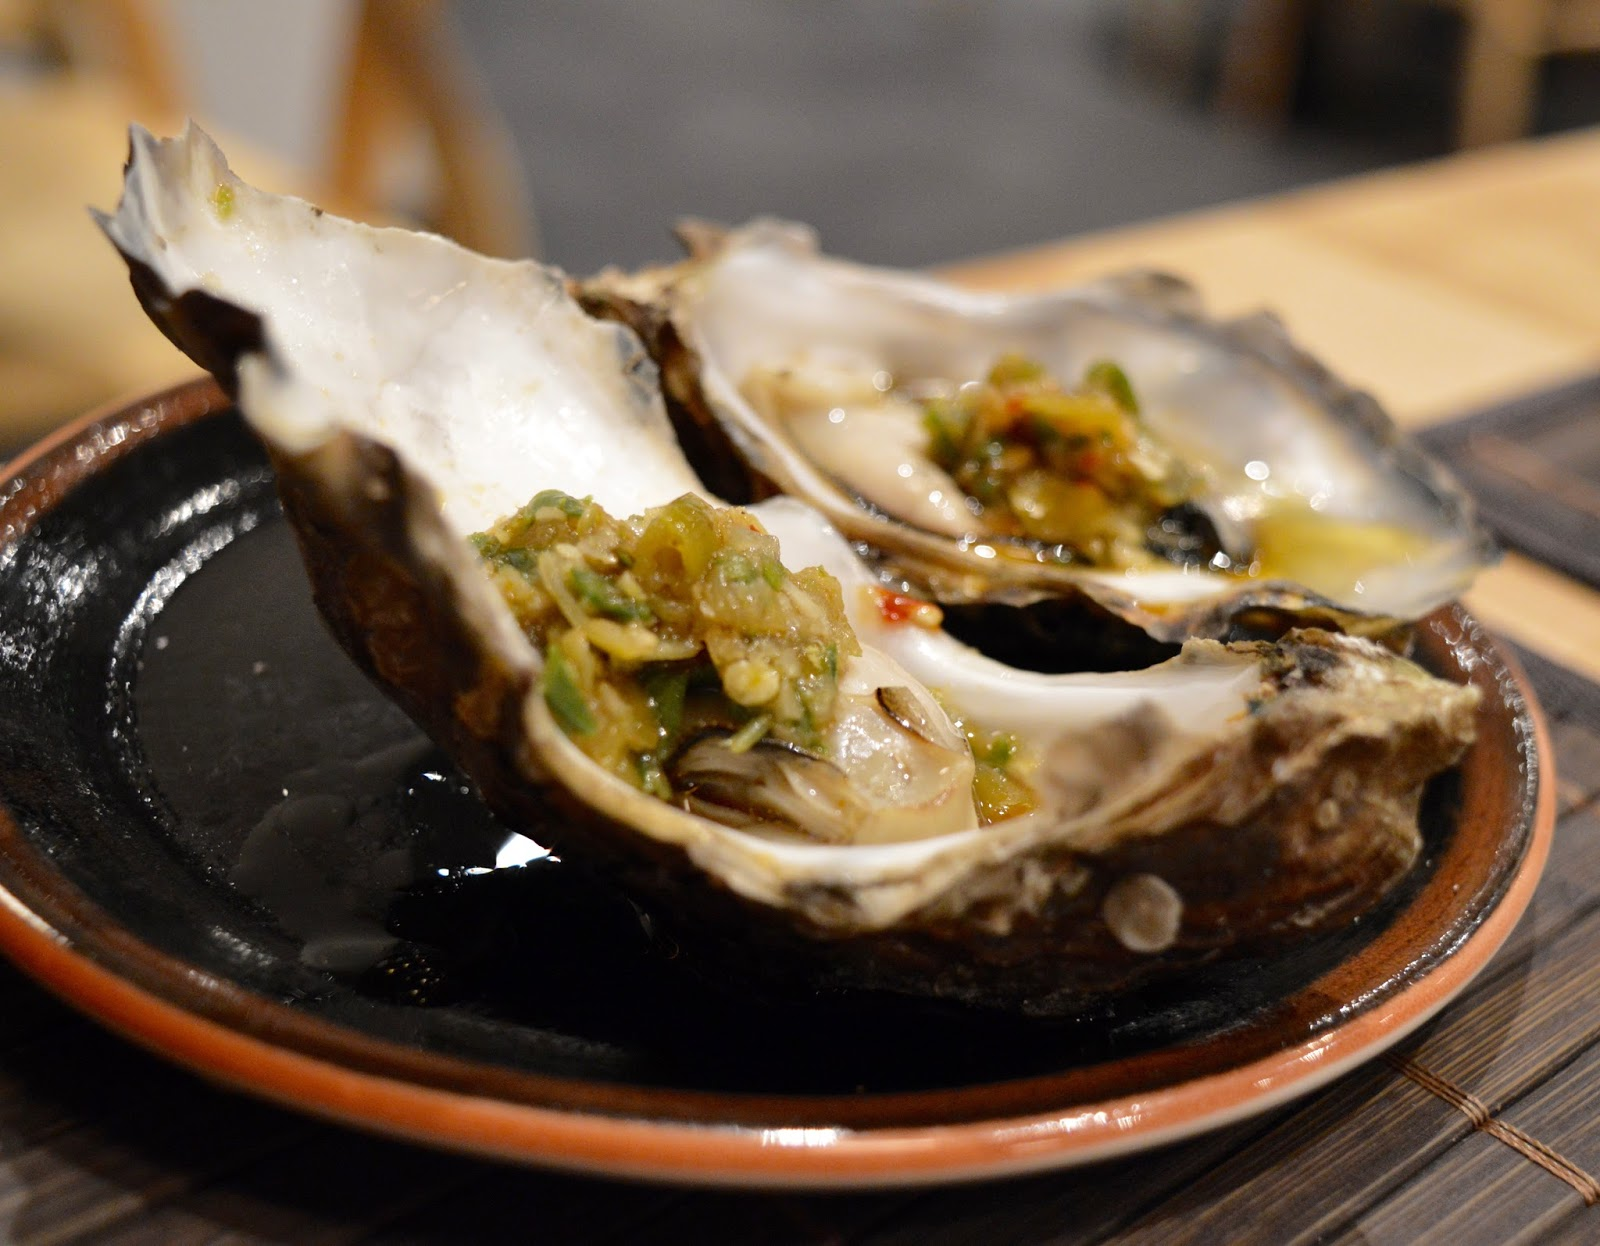 La Yuan Newcastle Menu Review | Tasty & Authentic Sichuan Cuisine  - Oysters